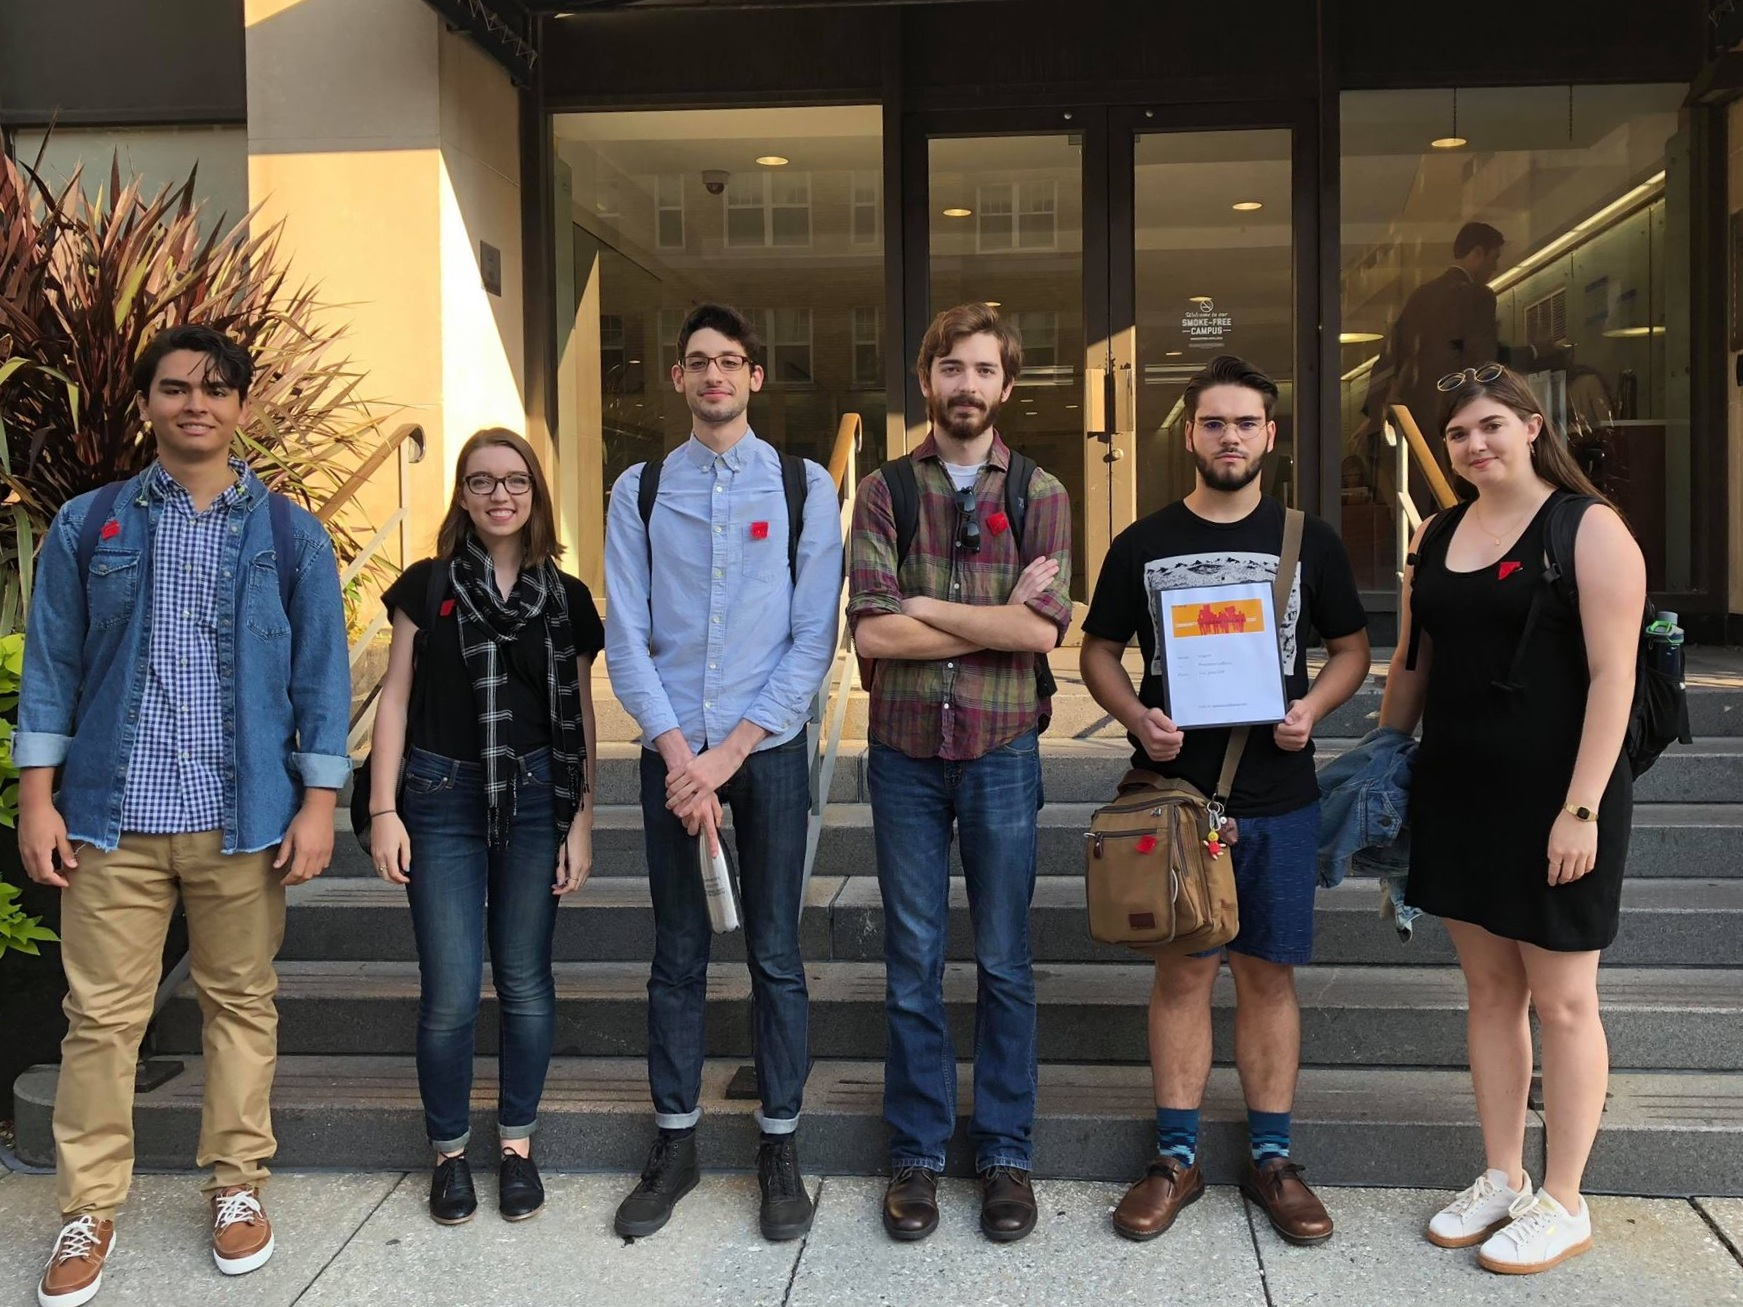 - On October 1, 2018, Fair Jobs GW organizers delivered our demands to President LeBlanc's office.